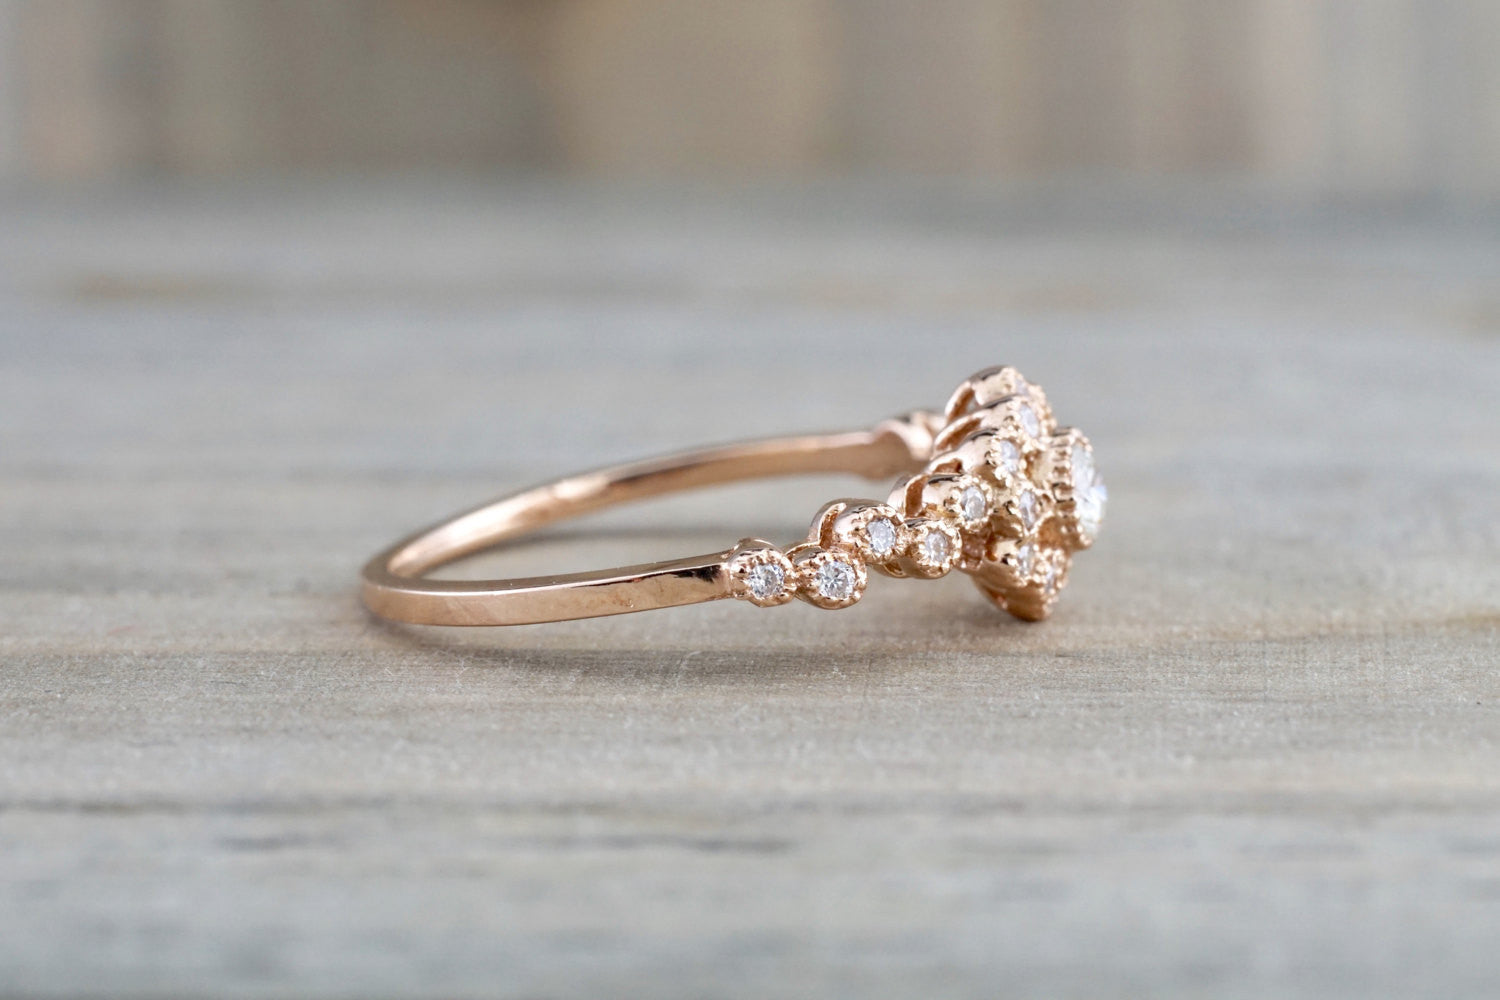 Vermont 14K Rose Gold Classic Diamond Engagement Wedding Promise Vintage Classic Cute Ring Band Arch Shaped